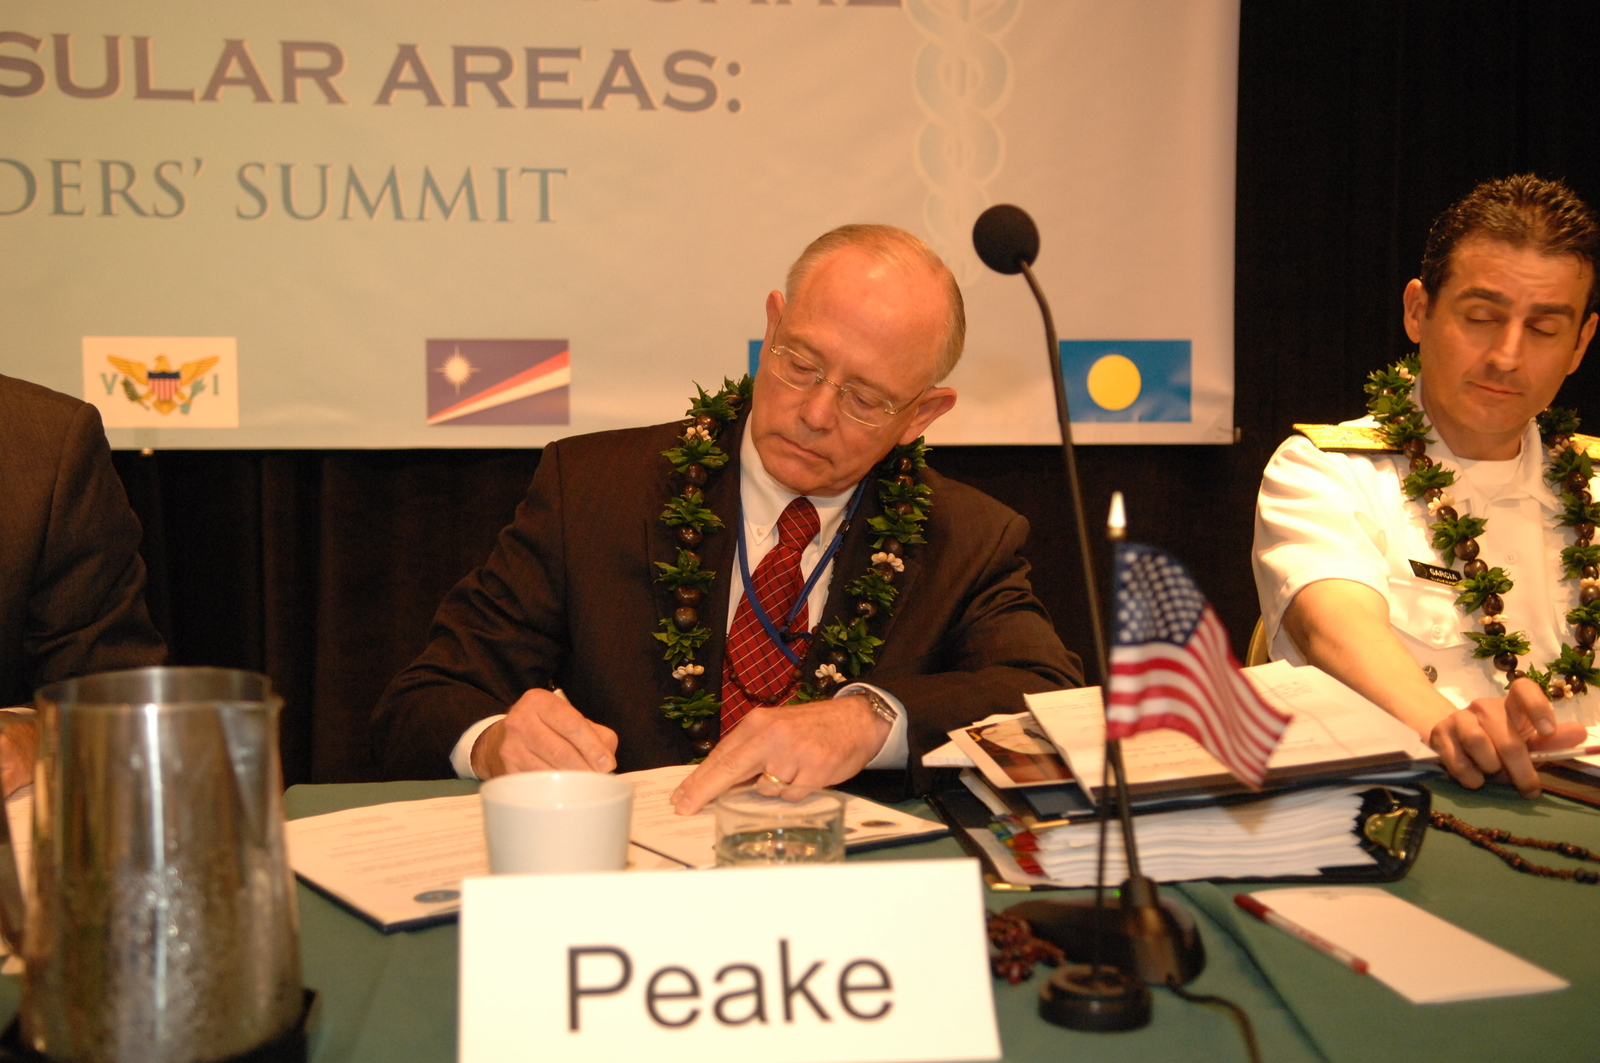 """[Assignment: 48-DPA-09-29-08_SOI_K_Isl_Conf_Sign] Signing of interagency coordination pledge at the Insular Areas Health Summit [(""""The Future of Health Care in the Insular Areas: A Leaders Summit"""") at the Marriott Hotel in] Honolulu, Hawaii, where Interior Secretary Dirk Kempthorne [joined senior federal health officials and leaders of the U.S. territories and freely associated states to discuss strategies and initiatives for advancing health care in those communities [48-DPA-09-29-08_SOI_K_Isl_Conf_Sign_DOI_0597.JPG]"""